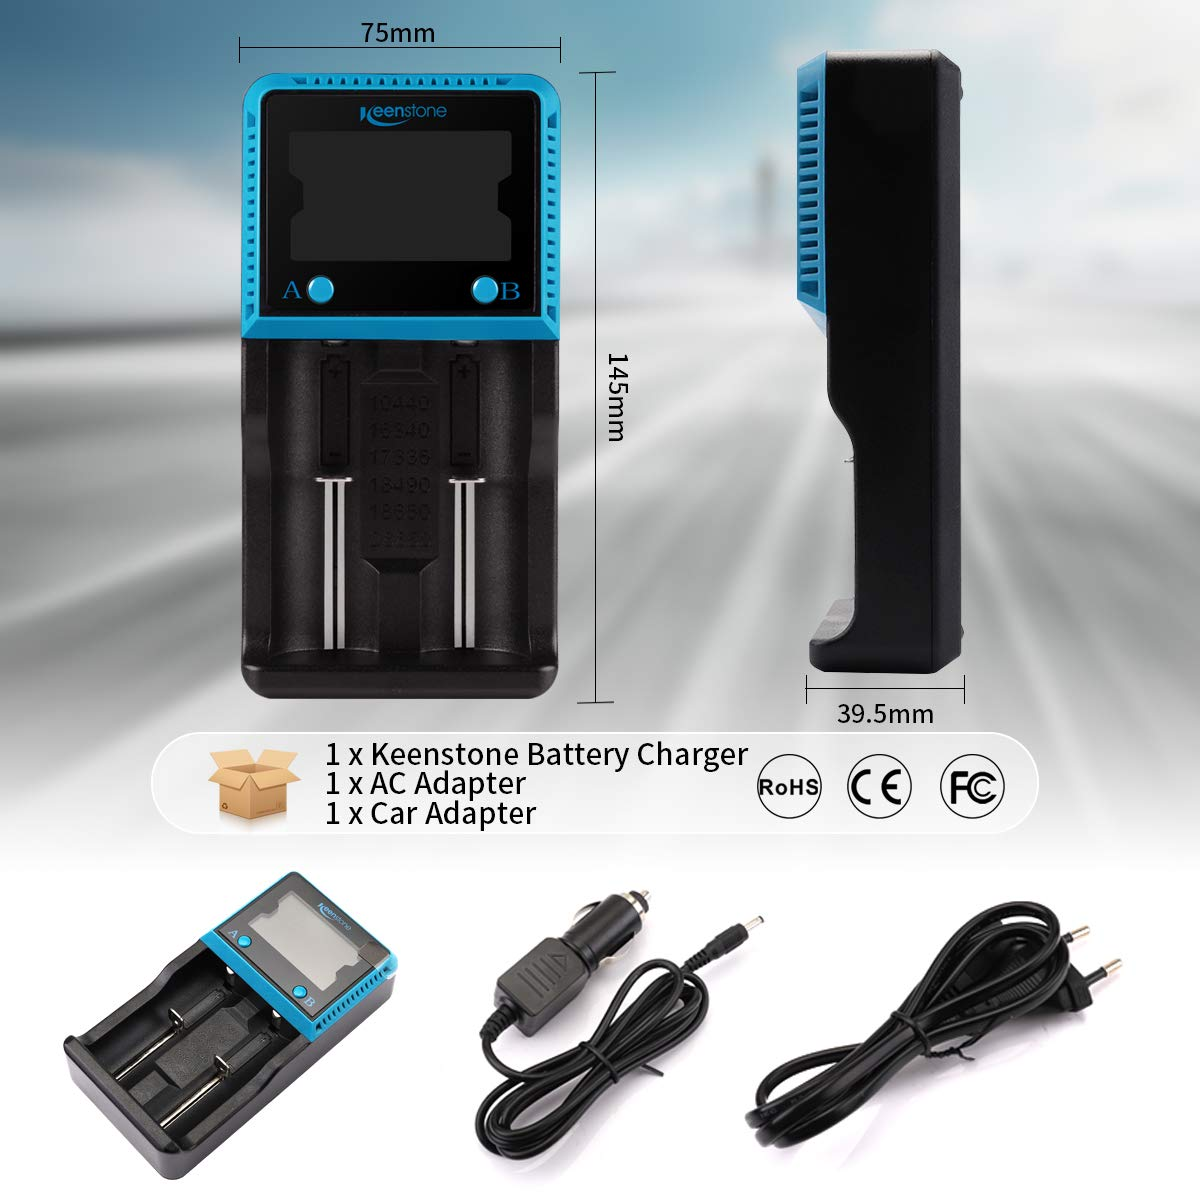 Keenstone Chargeur Piles Universel, Chargeur avec Ecran LCD pour Batteries Rechargeables Li-ION Ni-MH Ni-CD AA AAA LiFePO4 10440 14500 16340 18650 18500 22650 26650 RCR123 Piles Rechargeable